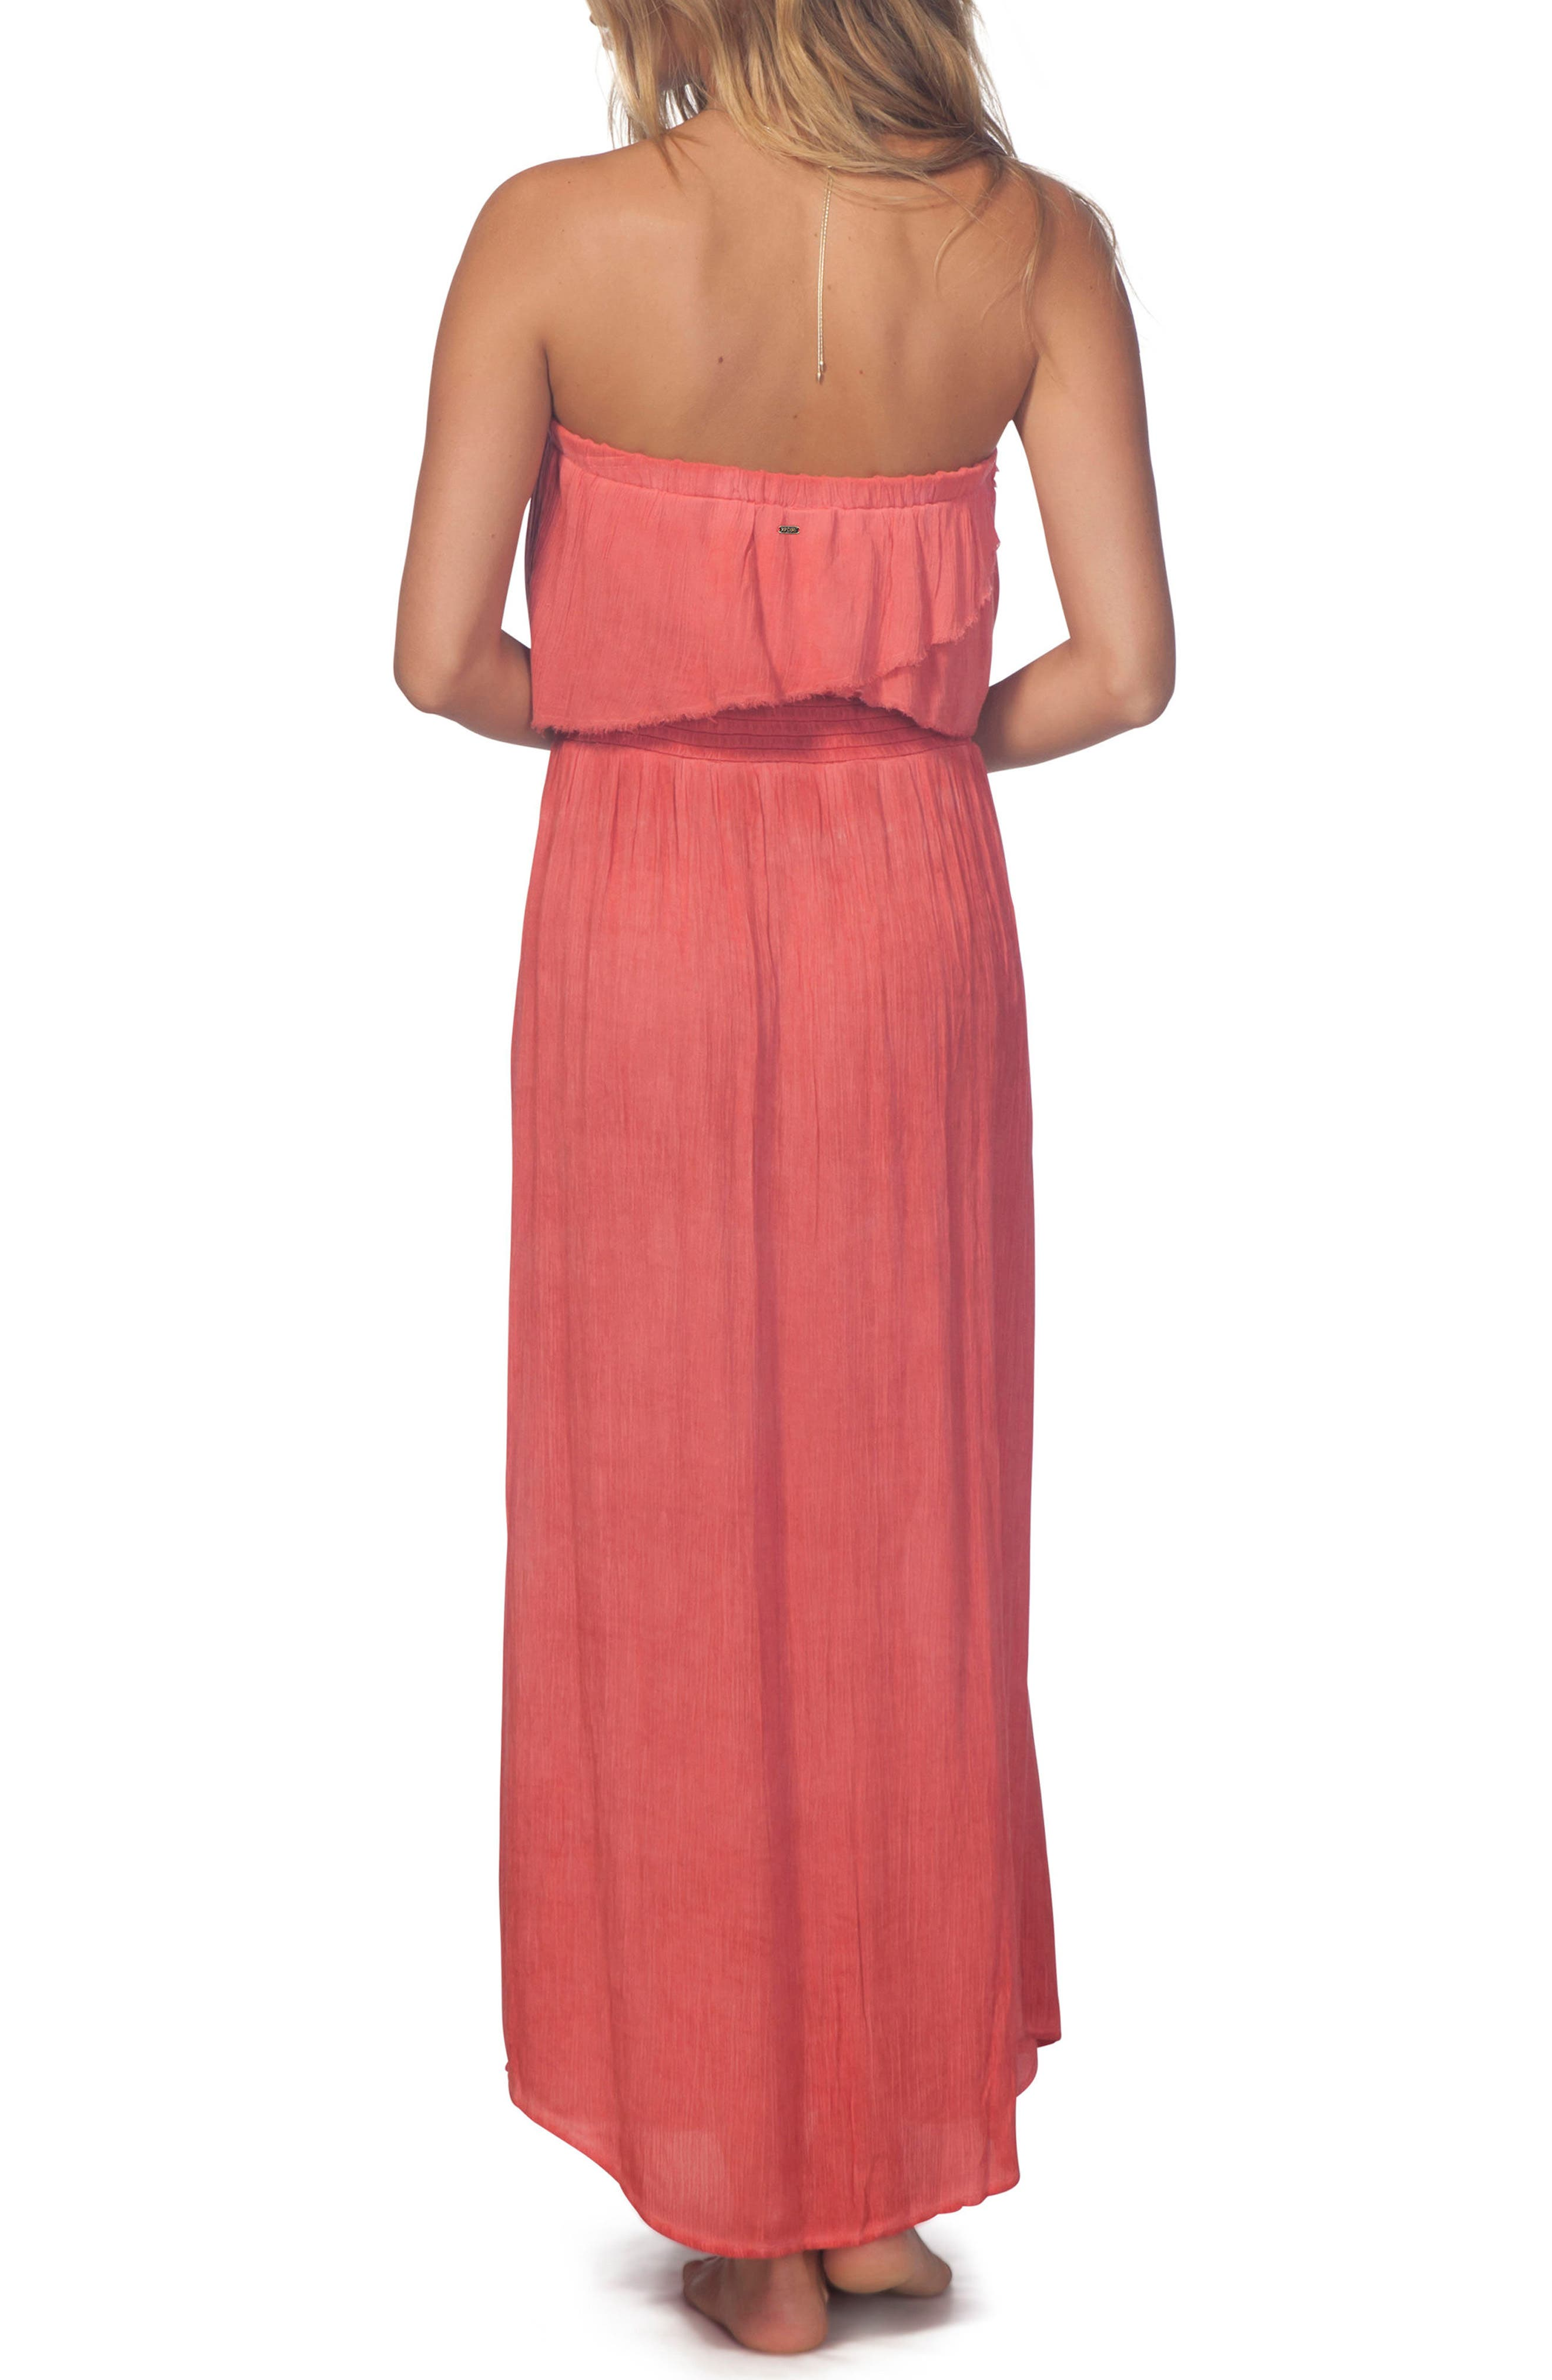 Beach Babe Popover Strapless Maxi Dress,                             Alternate thumbnail 3, color,                             Red